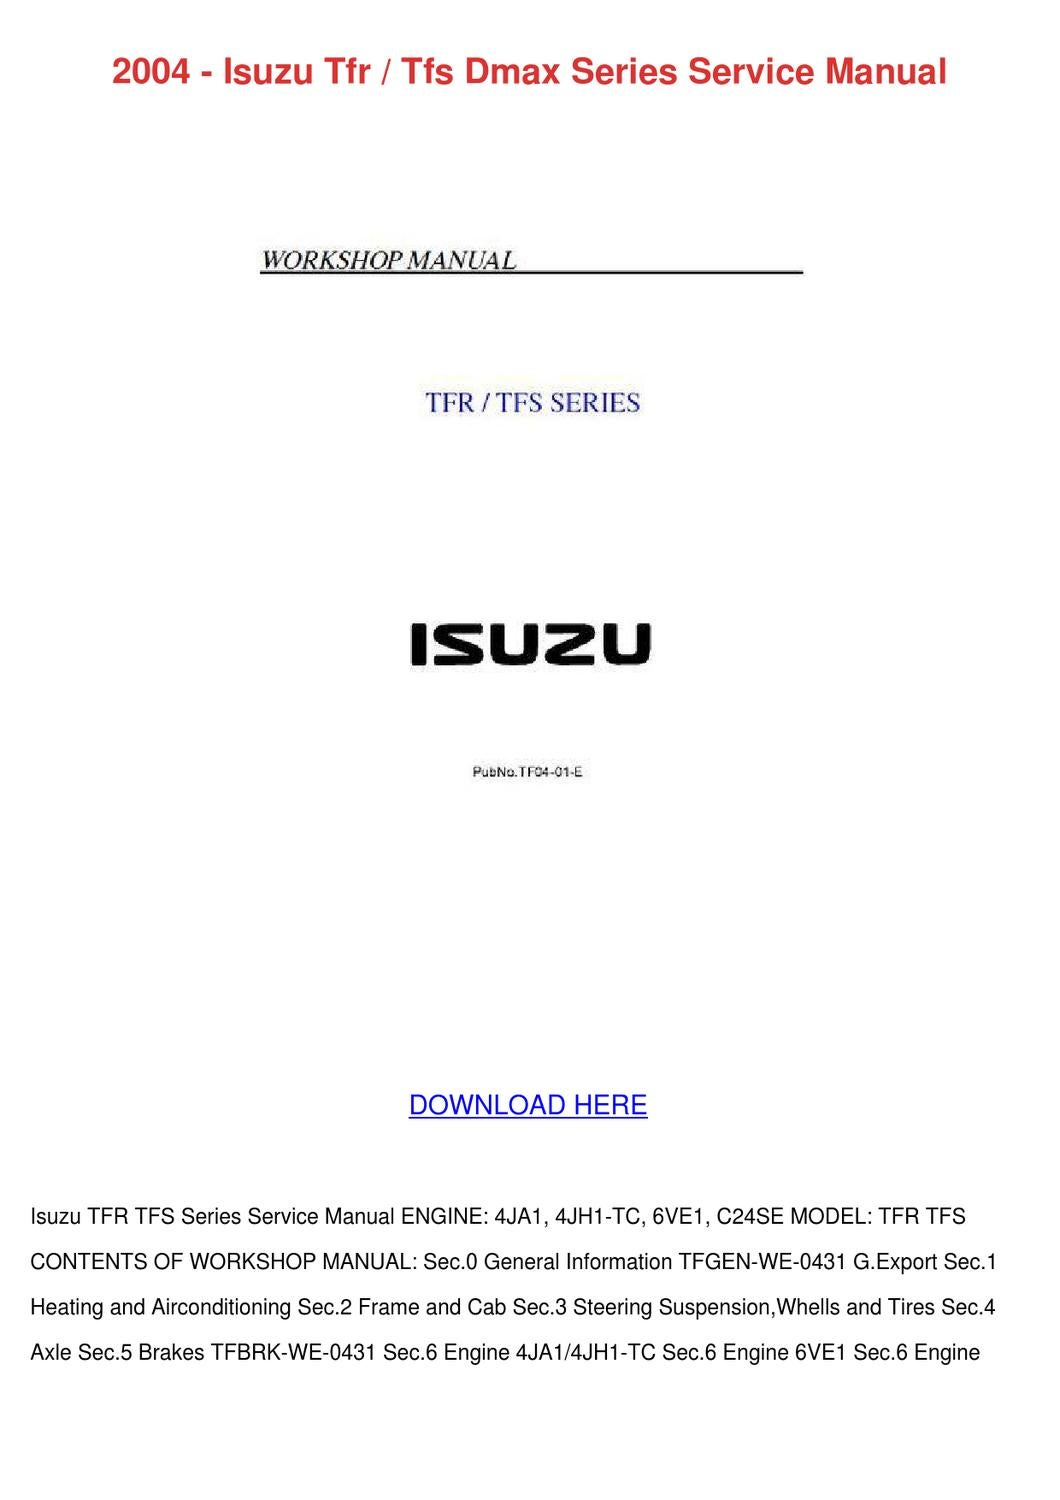 2013 isuzu dmax service manual